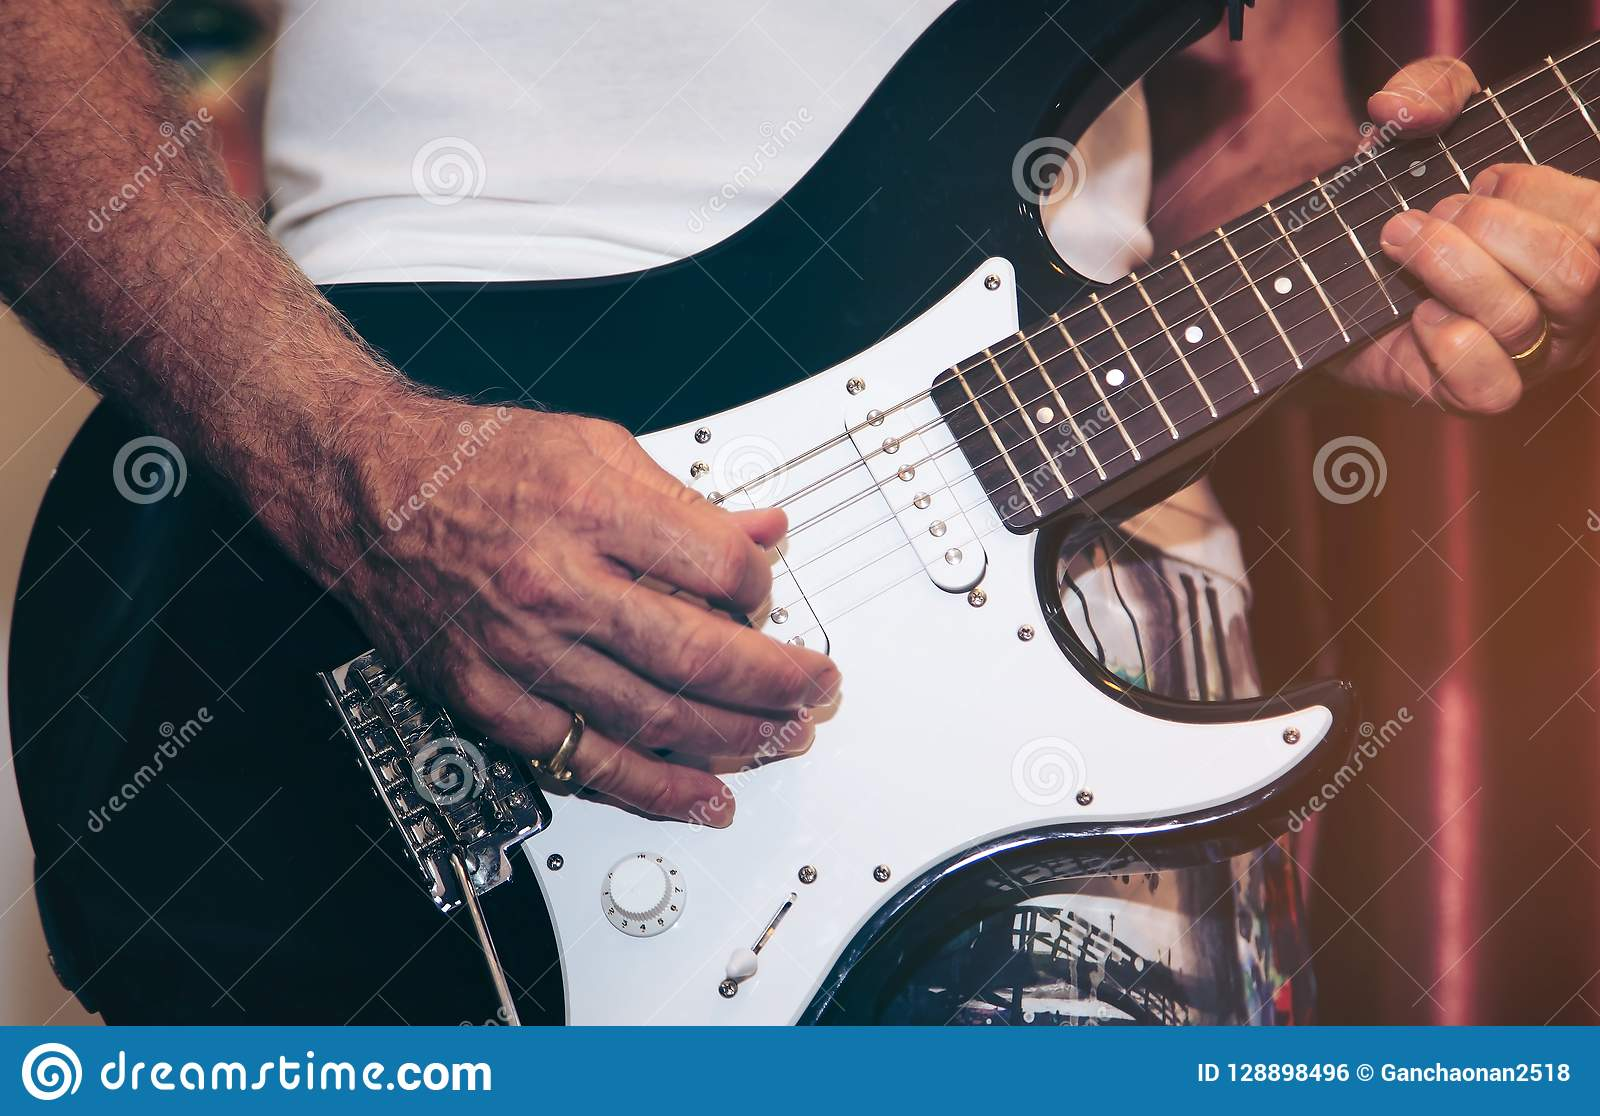 Close up of man hand playing guitar on stage for background.